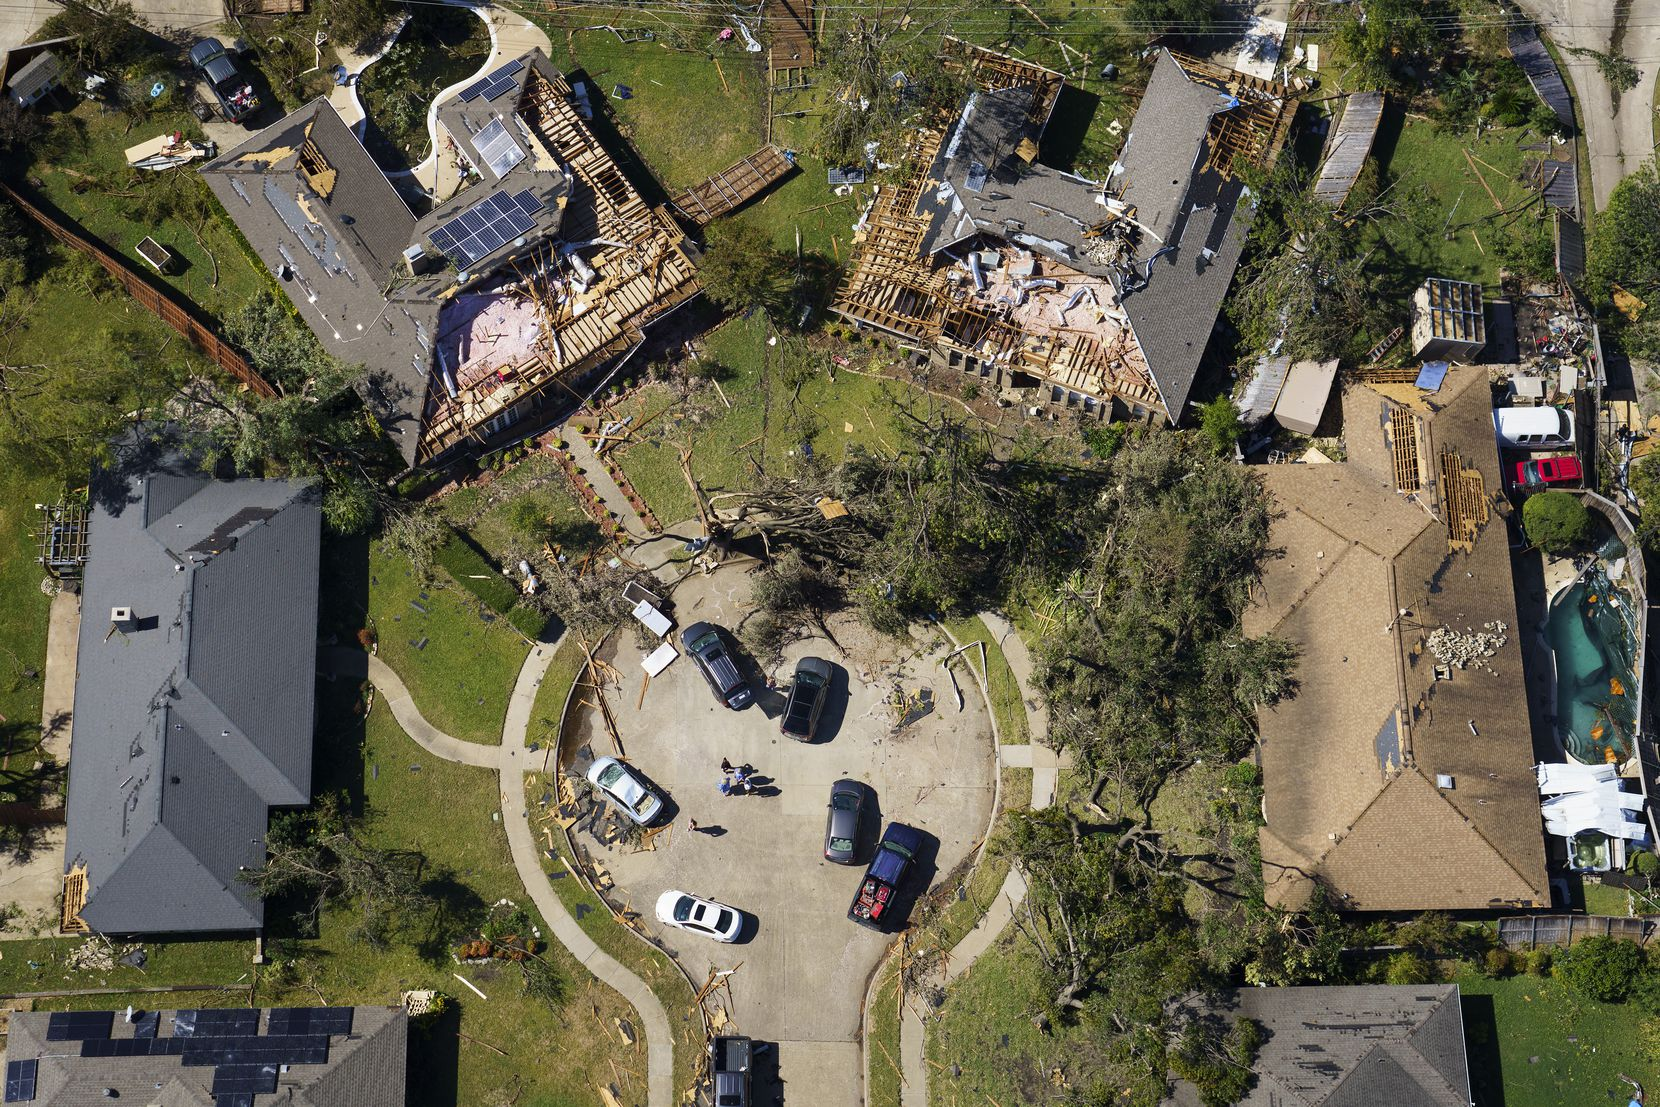 Damaged homes in a cul-de-sac on Stillmeadow Drive in Richardson are seen in aerial view of tornado damage on Monday, Oct. 21, 2019, in Richardson, Texas. (Smiley N. Pool/The Dallas Morning News)